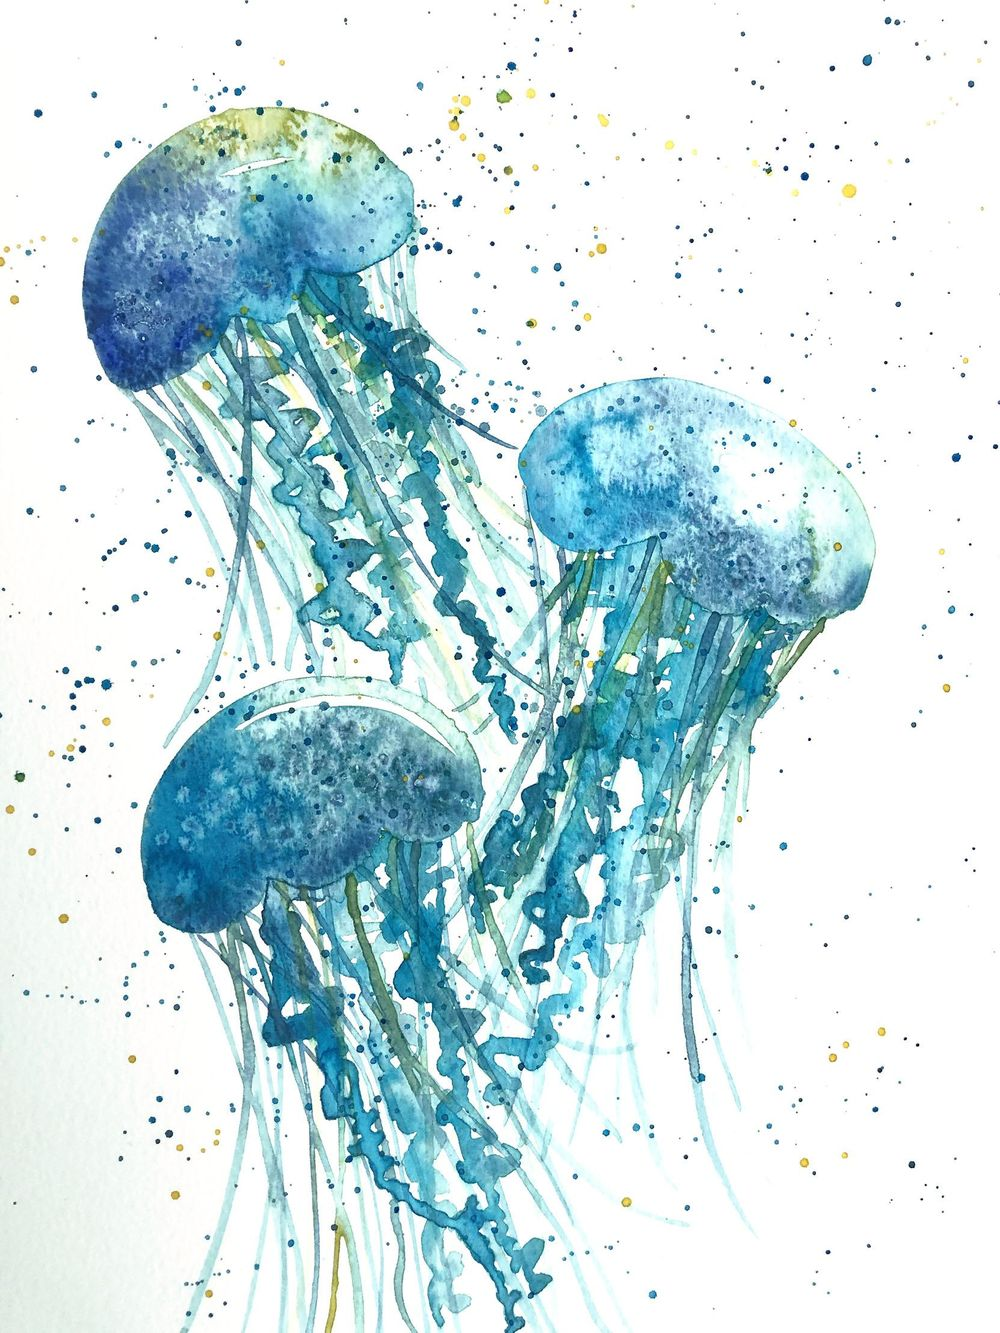 Watercolour Exercises - image 2 - student project